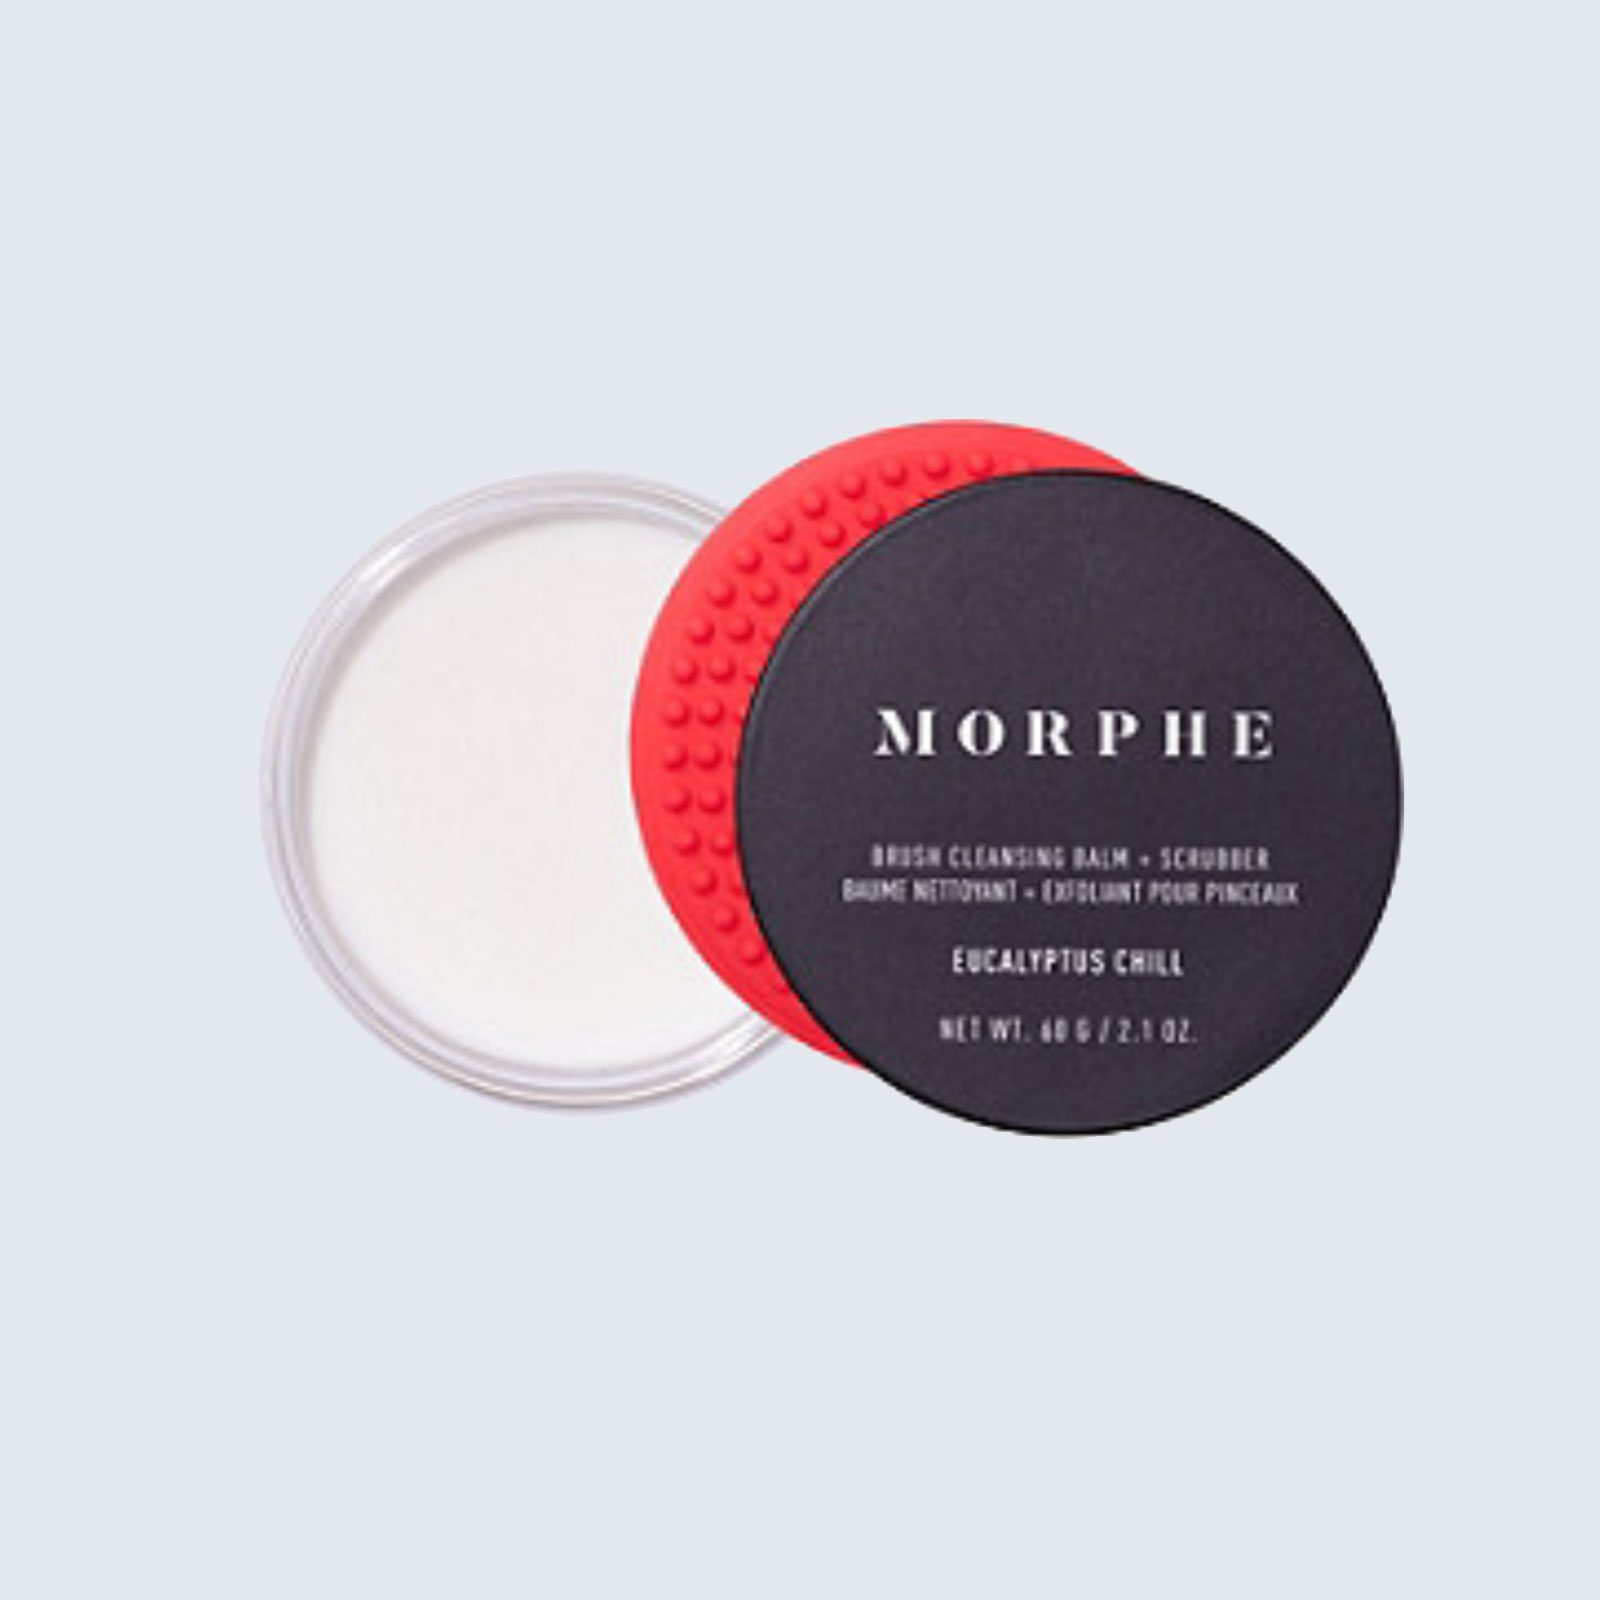 Best cleansing duo: Morphe Brush Cleansing Balm + Scrubber